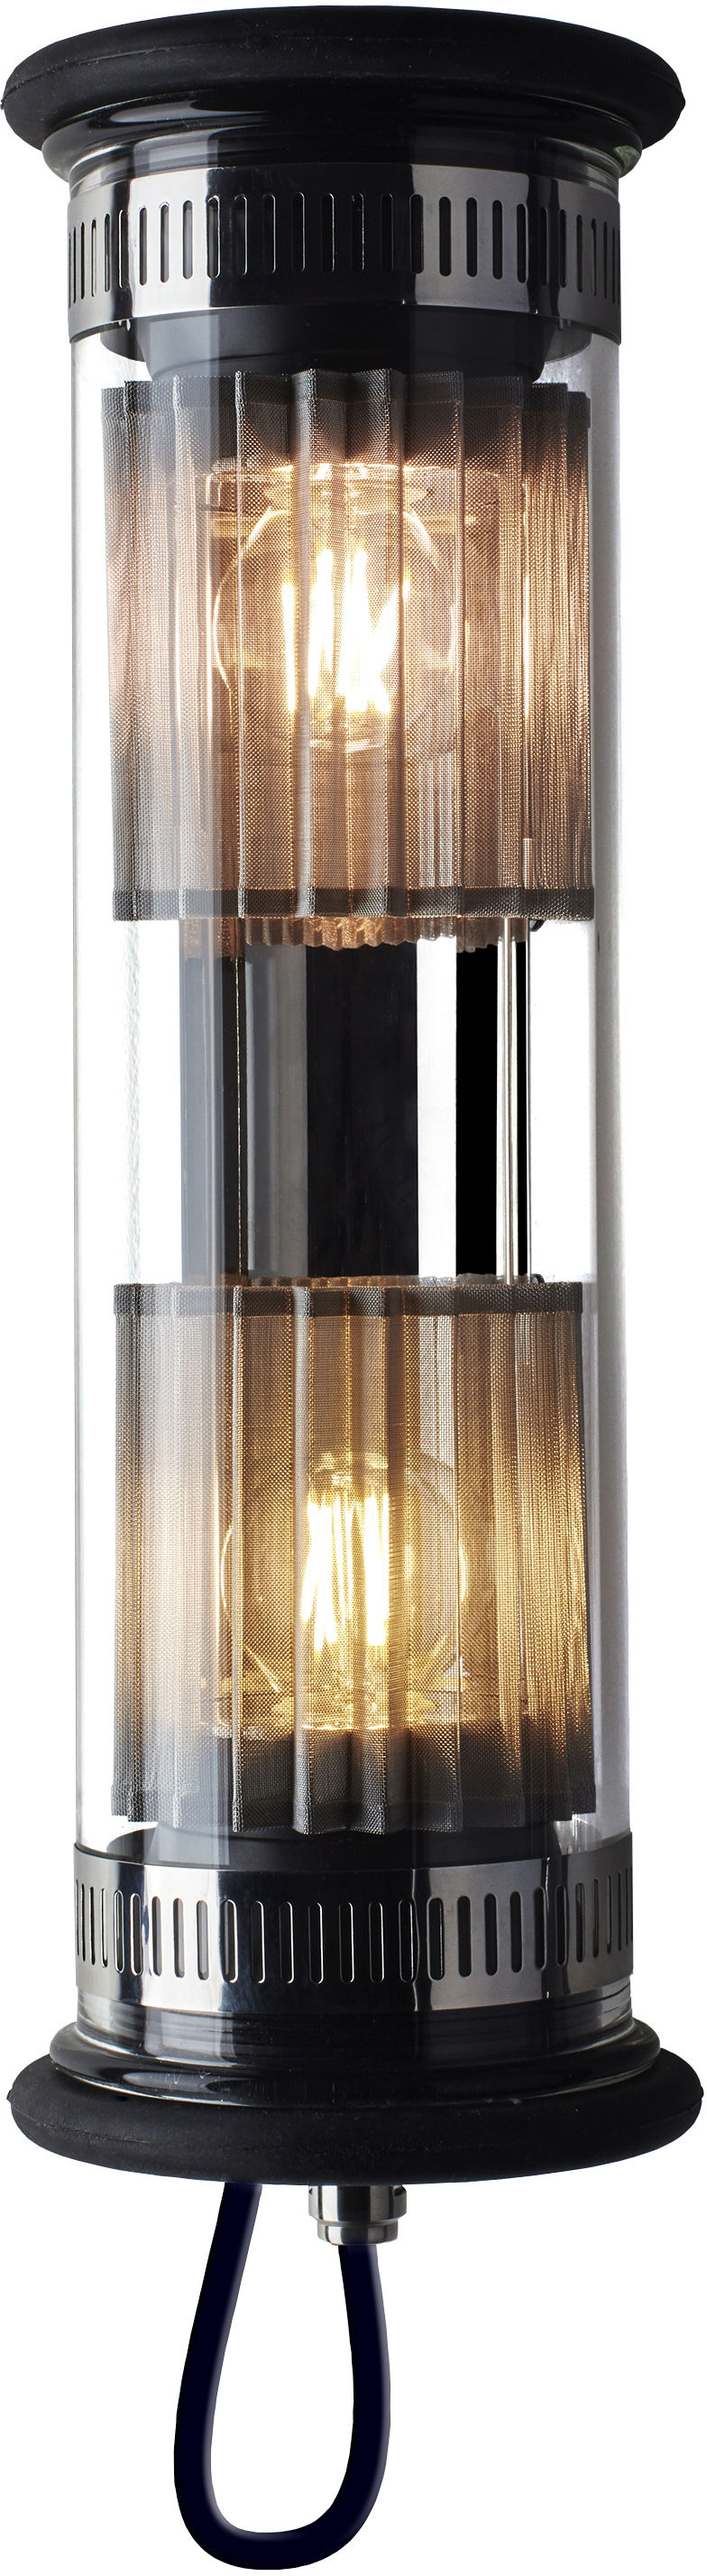 Lighting - Wall Lights - In The Tube 100-350 Outdoor wall light - L 37 cm by DCW éditions - Silver / Silver mesh - Borosilicated glass, Stainless steel